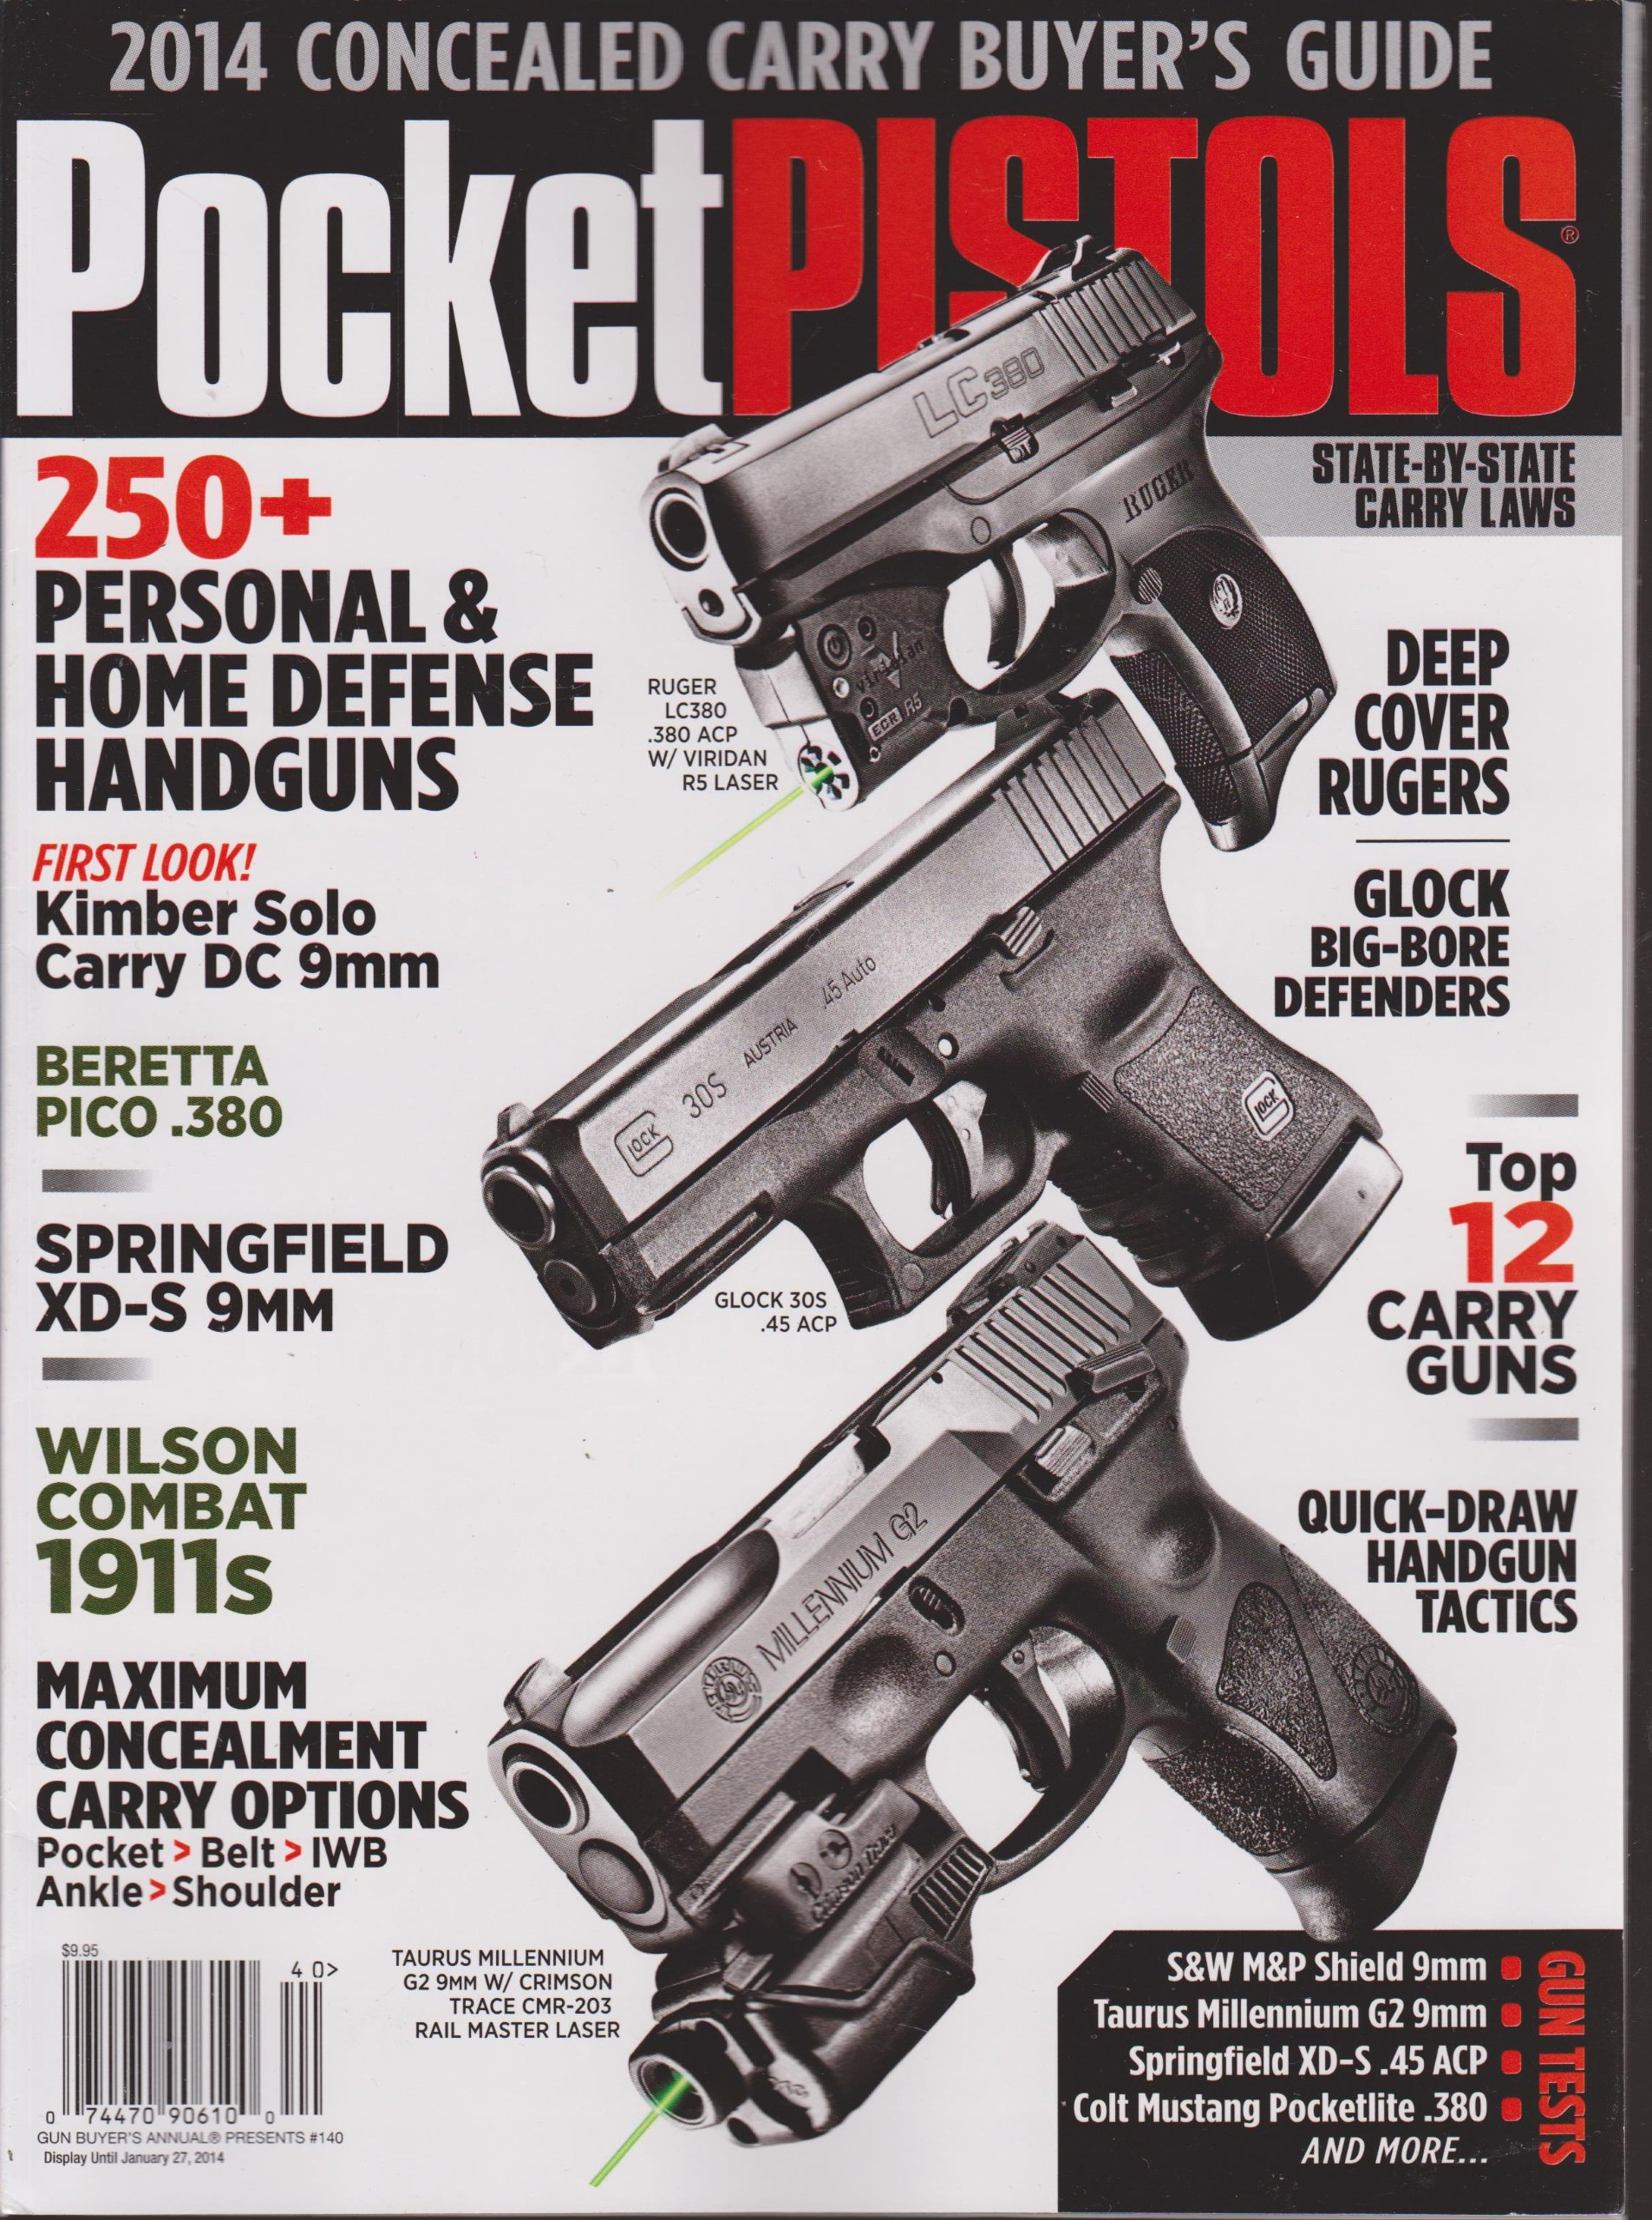 pocket pistols 2014 concealed carry buyer s guide magazine gun rh amazon com Central Wisconsin Buyer's Guide Buyer's Guide Classified Ads